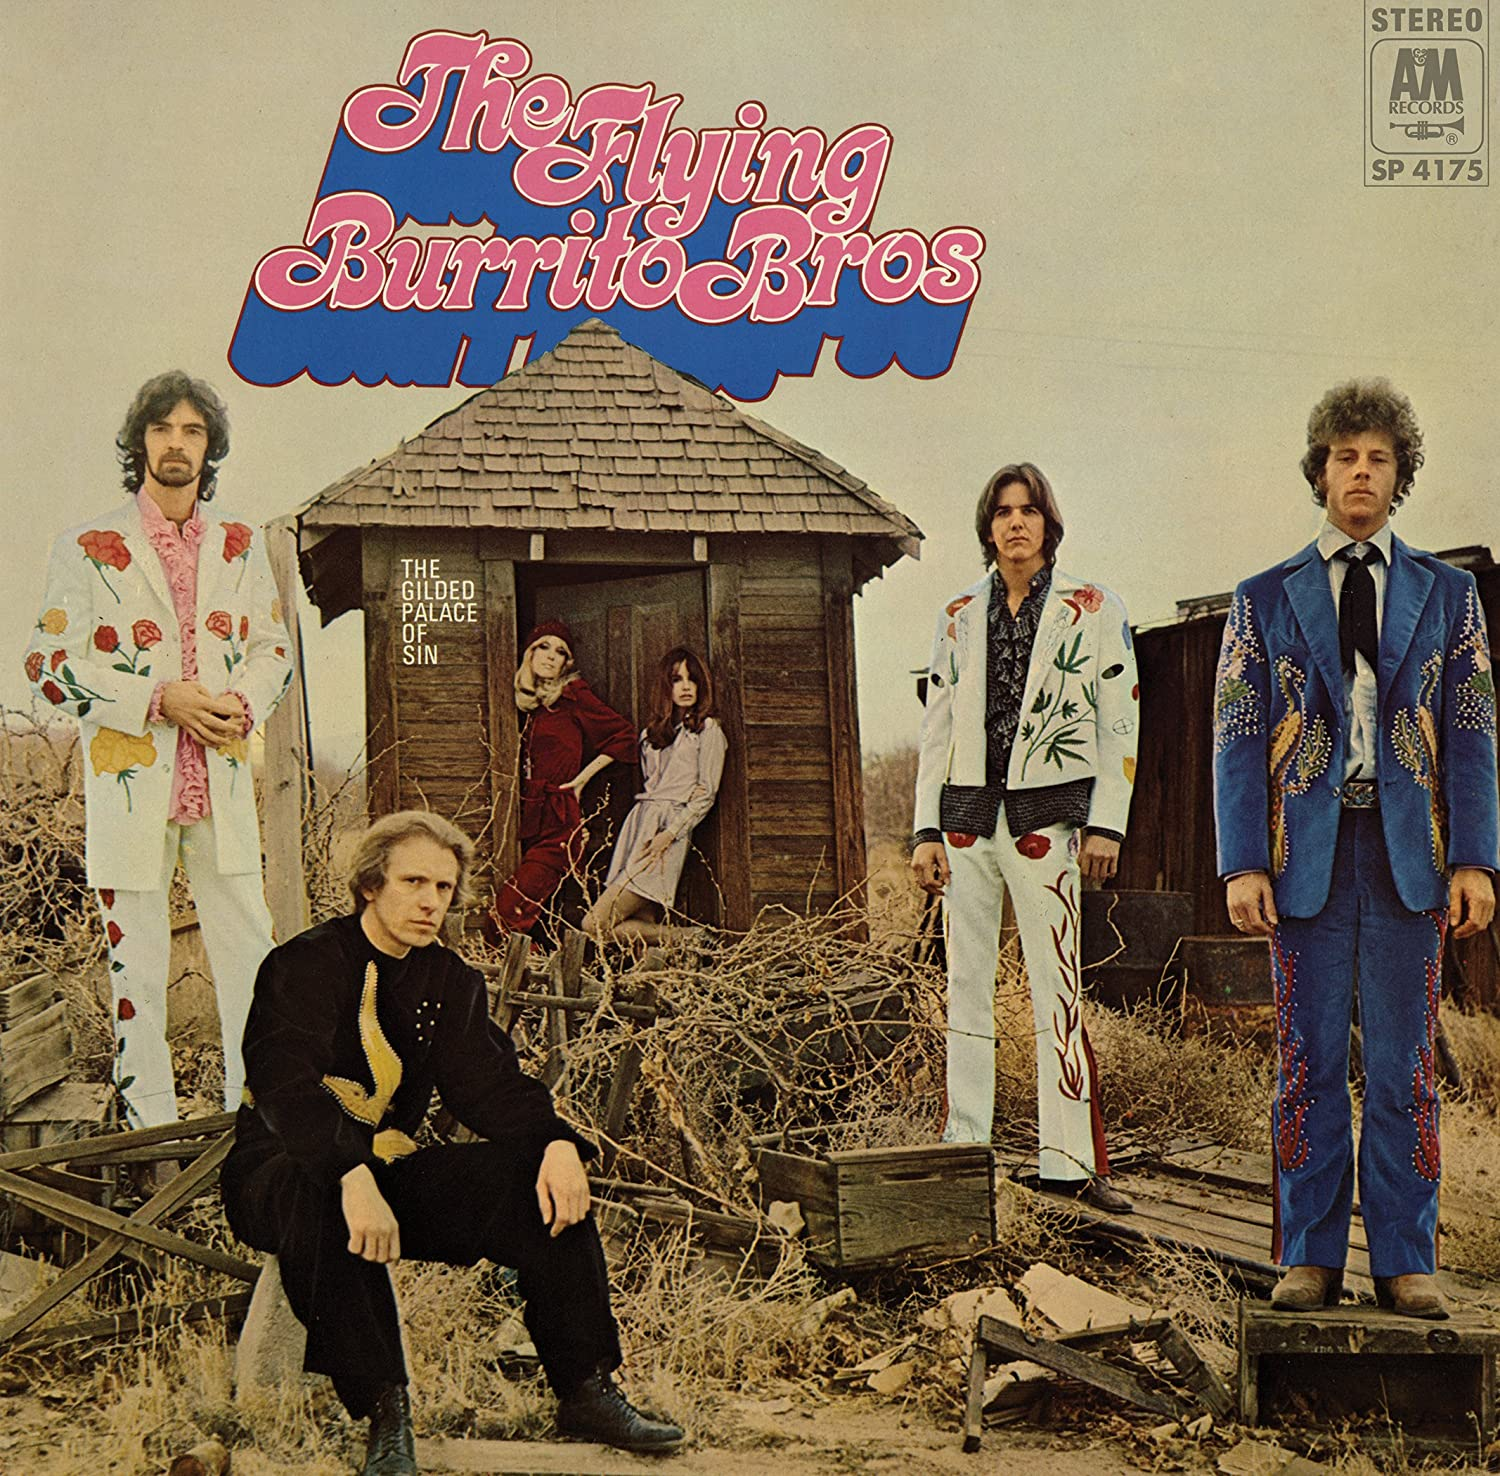 Flying Burrito Bros, The - The Gilded Palace Of Sin [SACD] (Hybrid Dual-Layer CD/SACD Disc) - Urban Vinyl | Records, Headphones, and more.